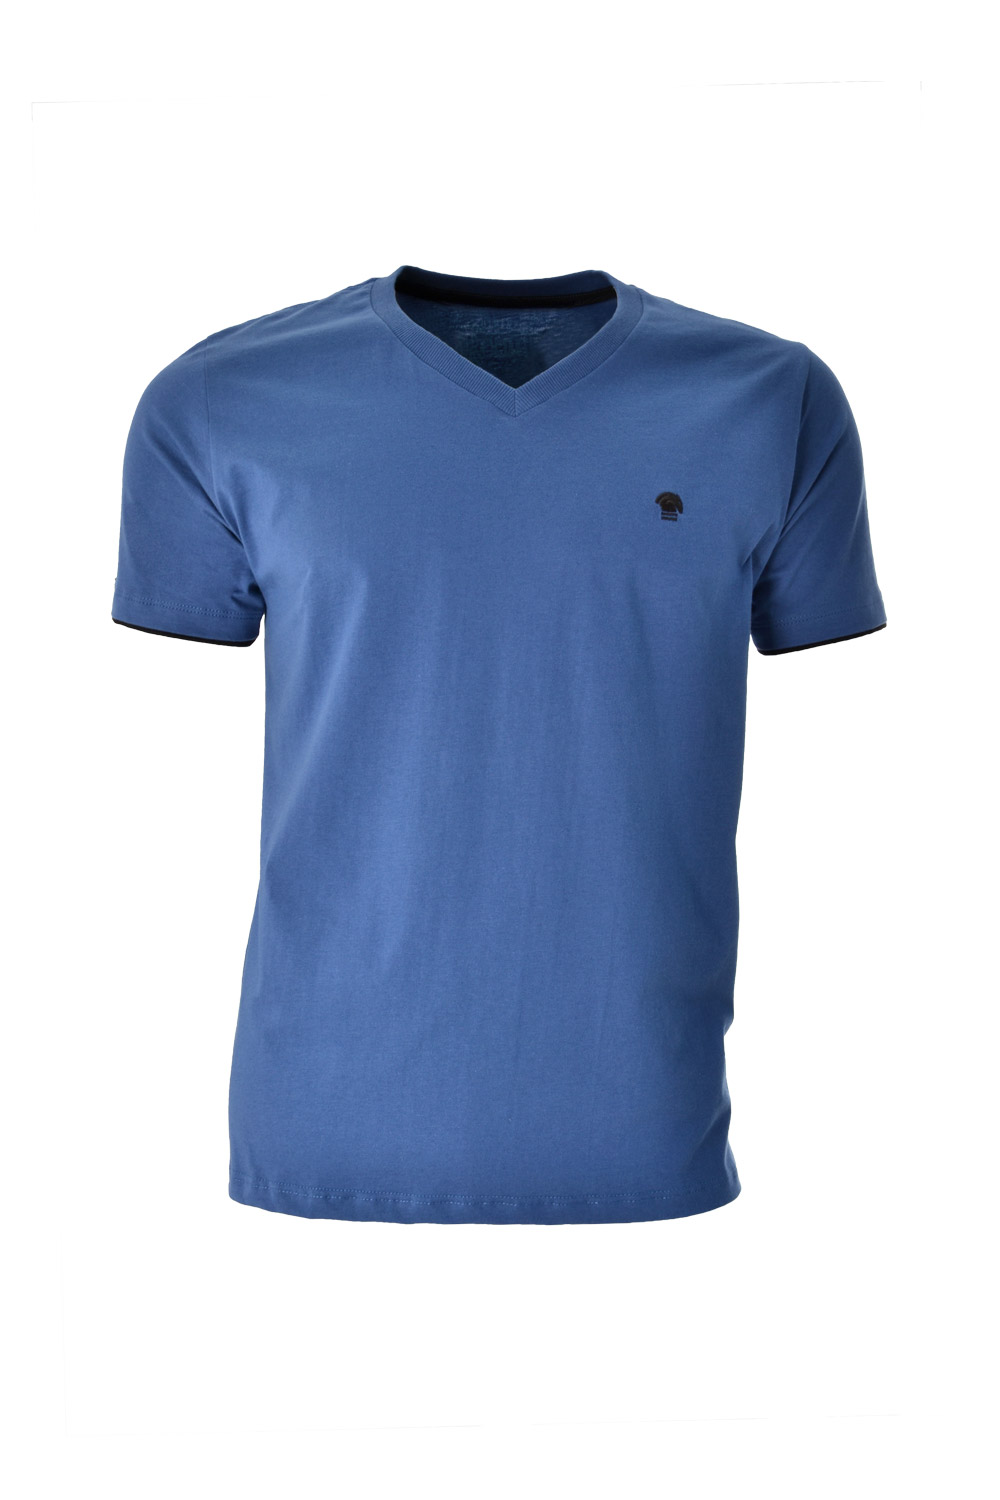 CAMISETA MC BLUES SUPER SLIM ALGODAO GOLA V LISO AZUL MEDIO